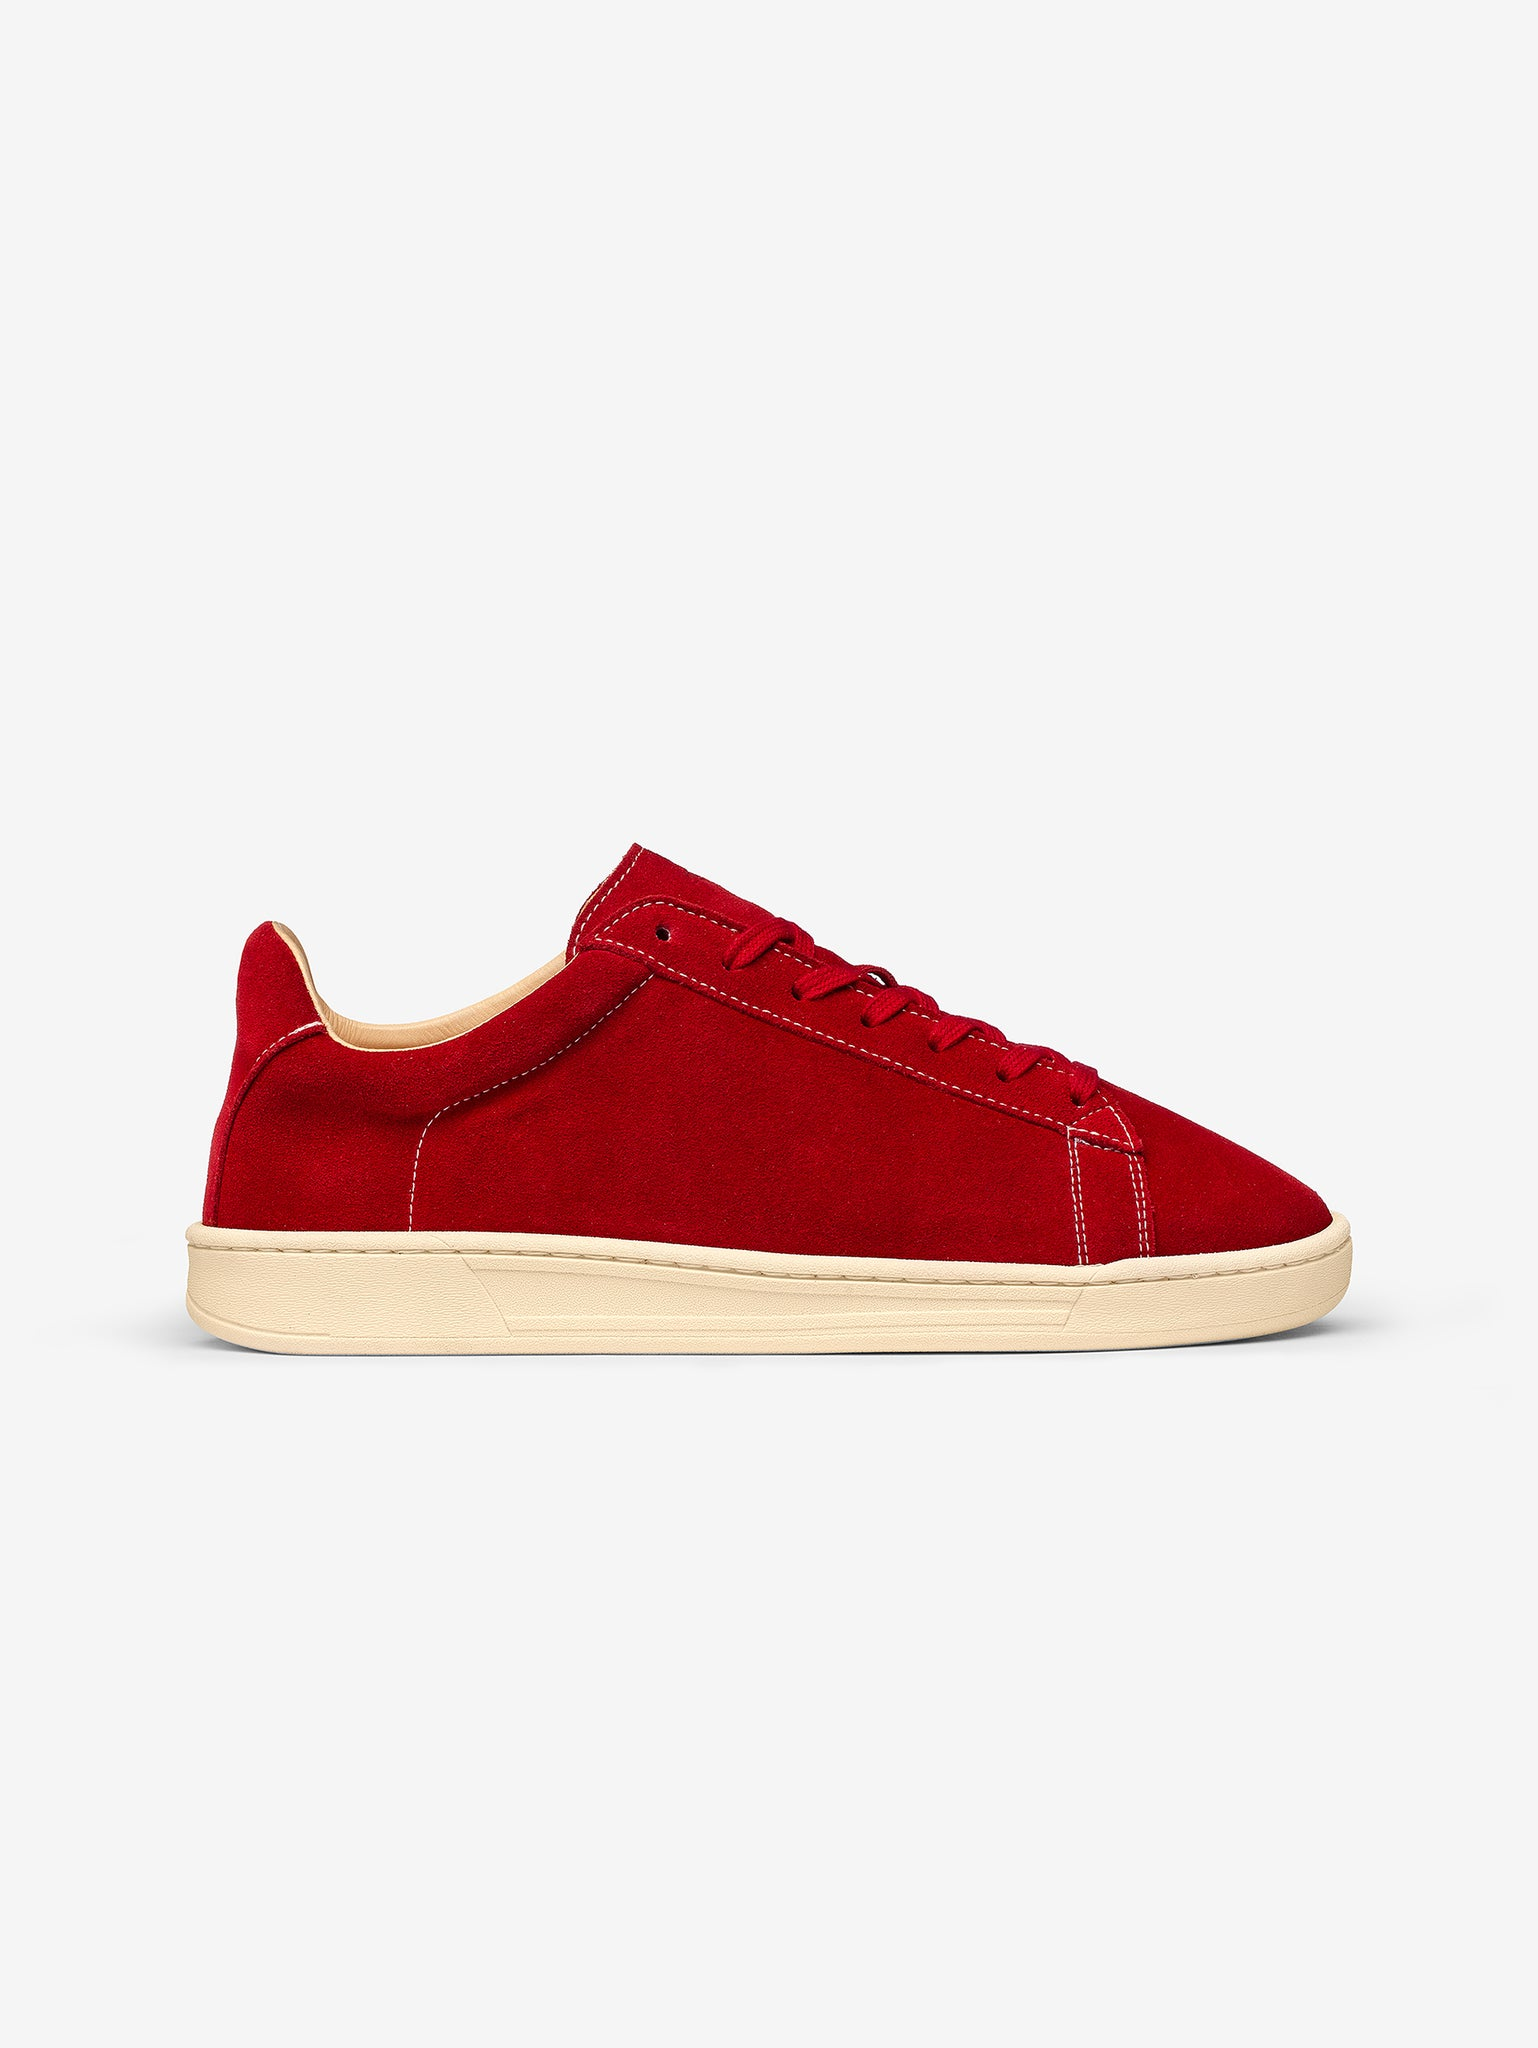 1971 - Red Suede Trainer